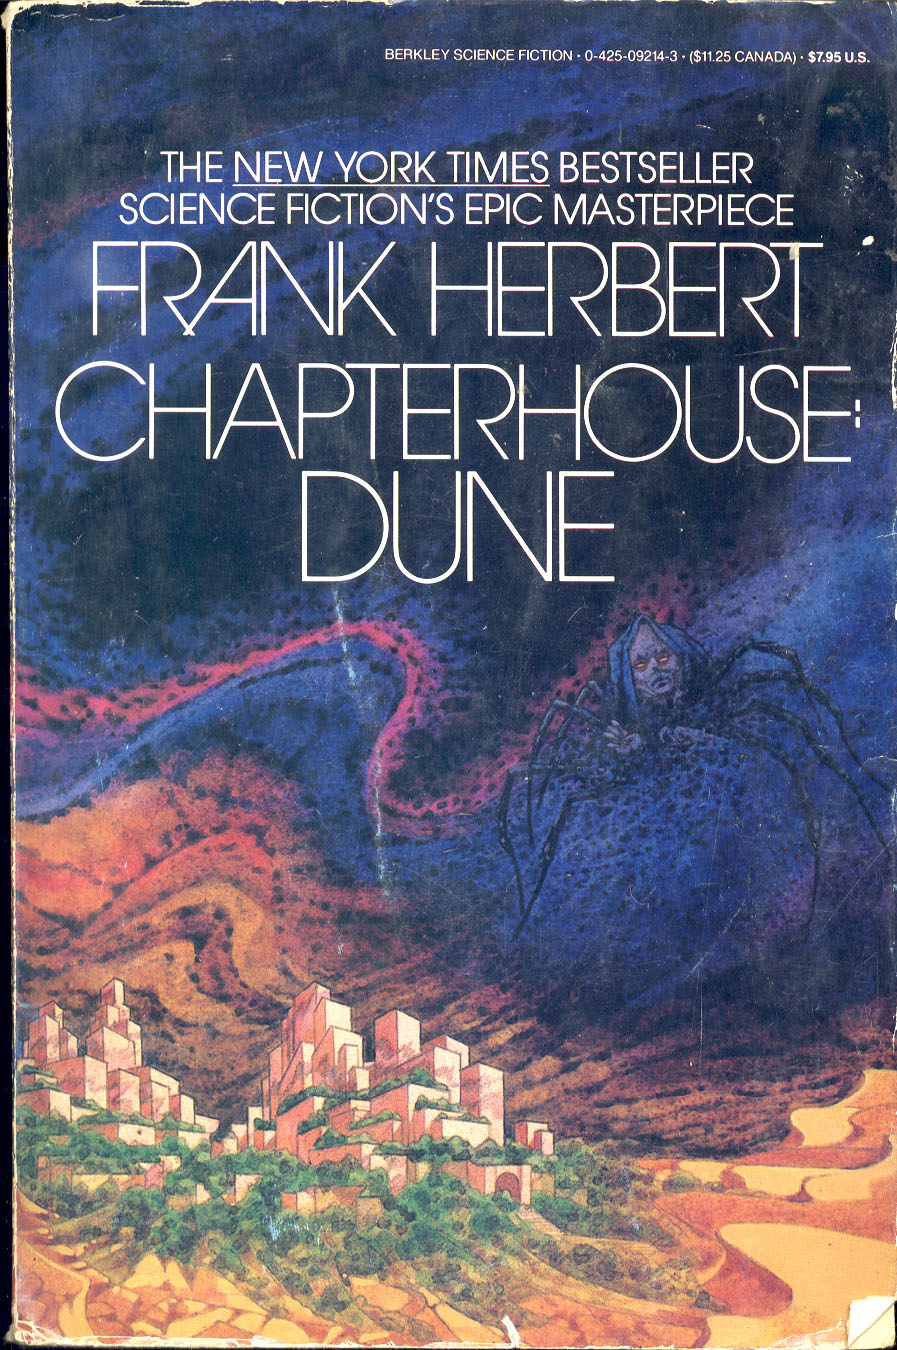 a review of frank herbert epic dune It seems that david lynch's adaptation of frank herbert's epic science fiction novel dune (1984) wasn't enough to convince people that this classic works far better.